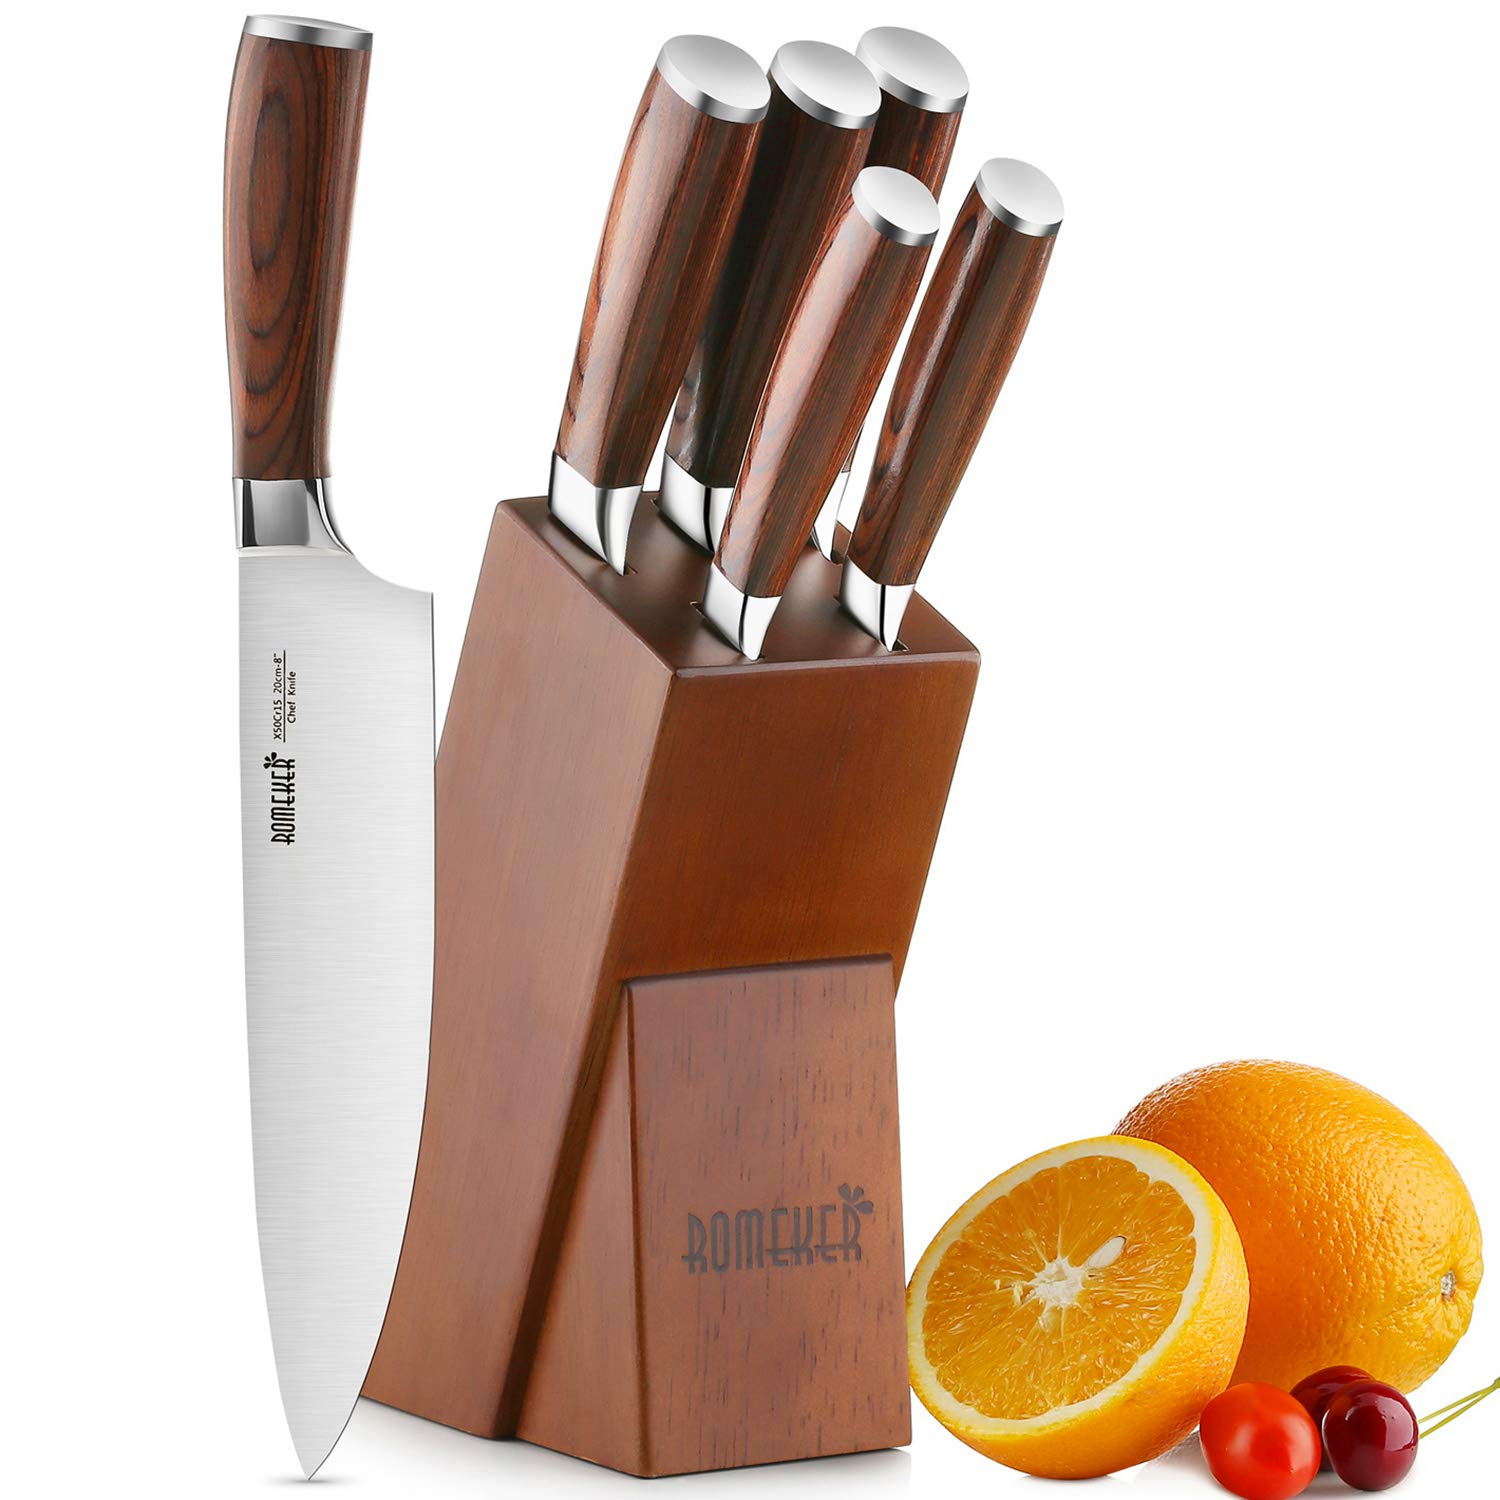 Knife Set,6-Piece Kitchen Knife Set with Wooden Block Germany High Carbon Stainless Steel Knife Block Set,Chef Knife Set Boxed Knife Set by ROMEKER by ROMEKER (Image #1)